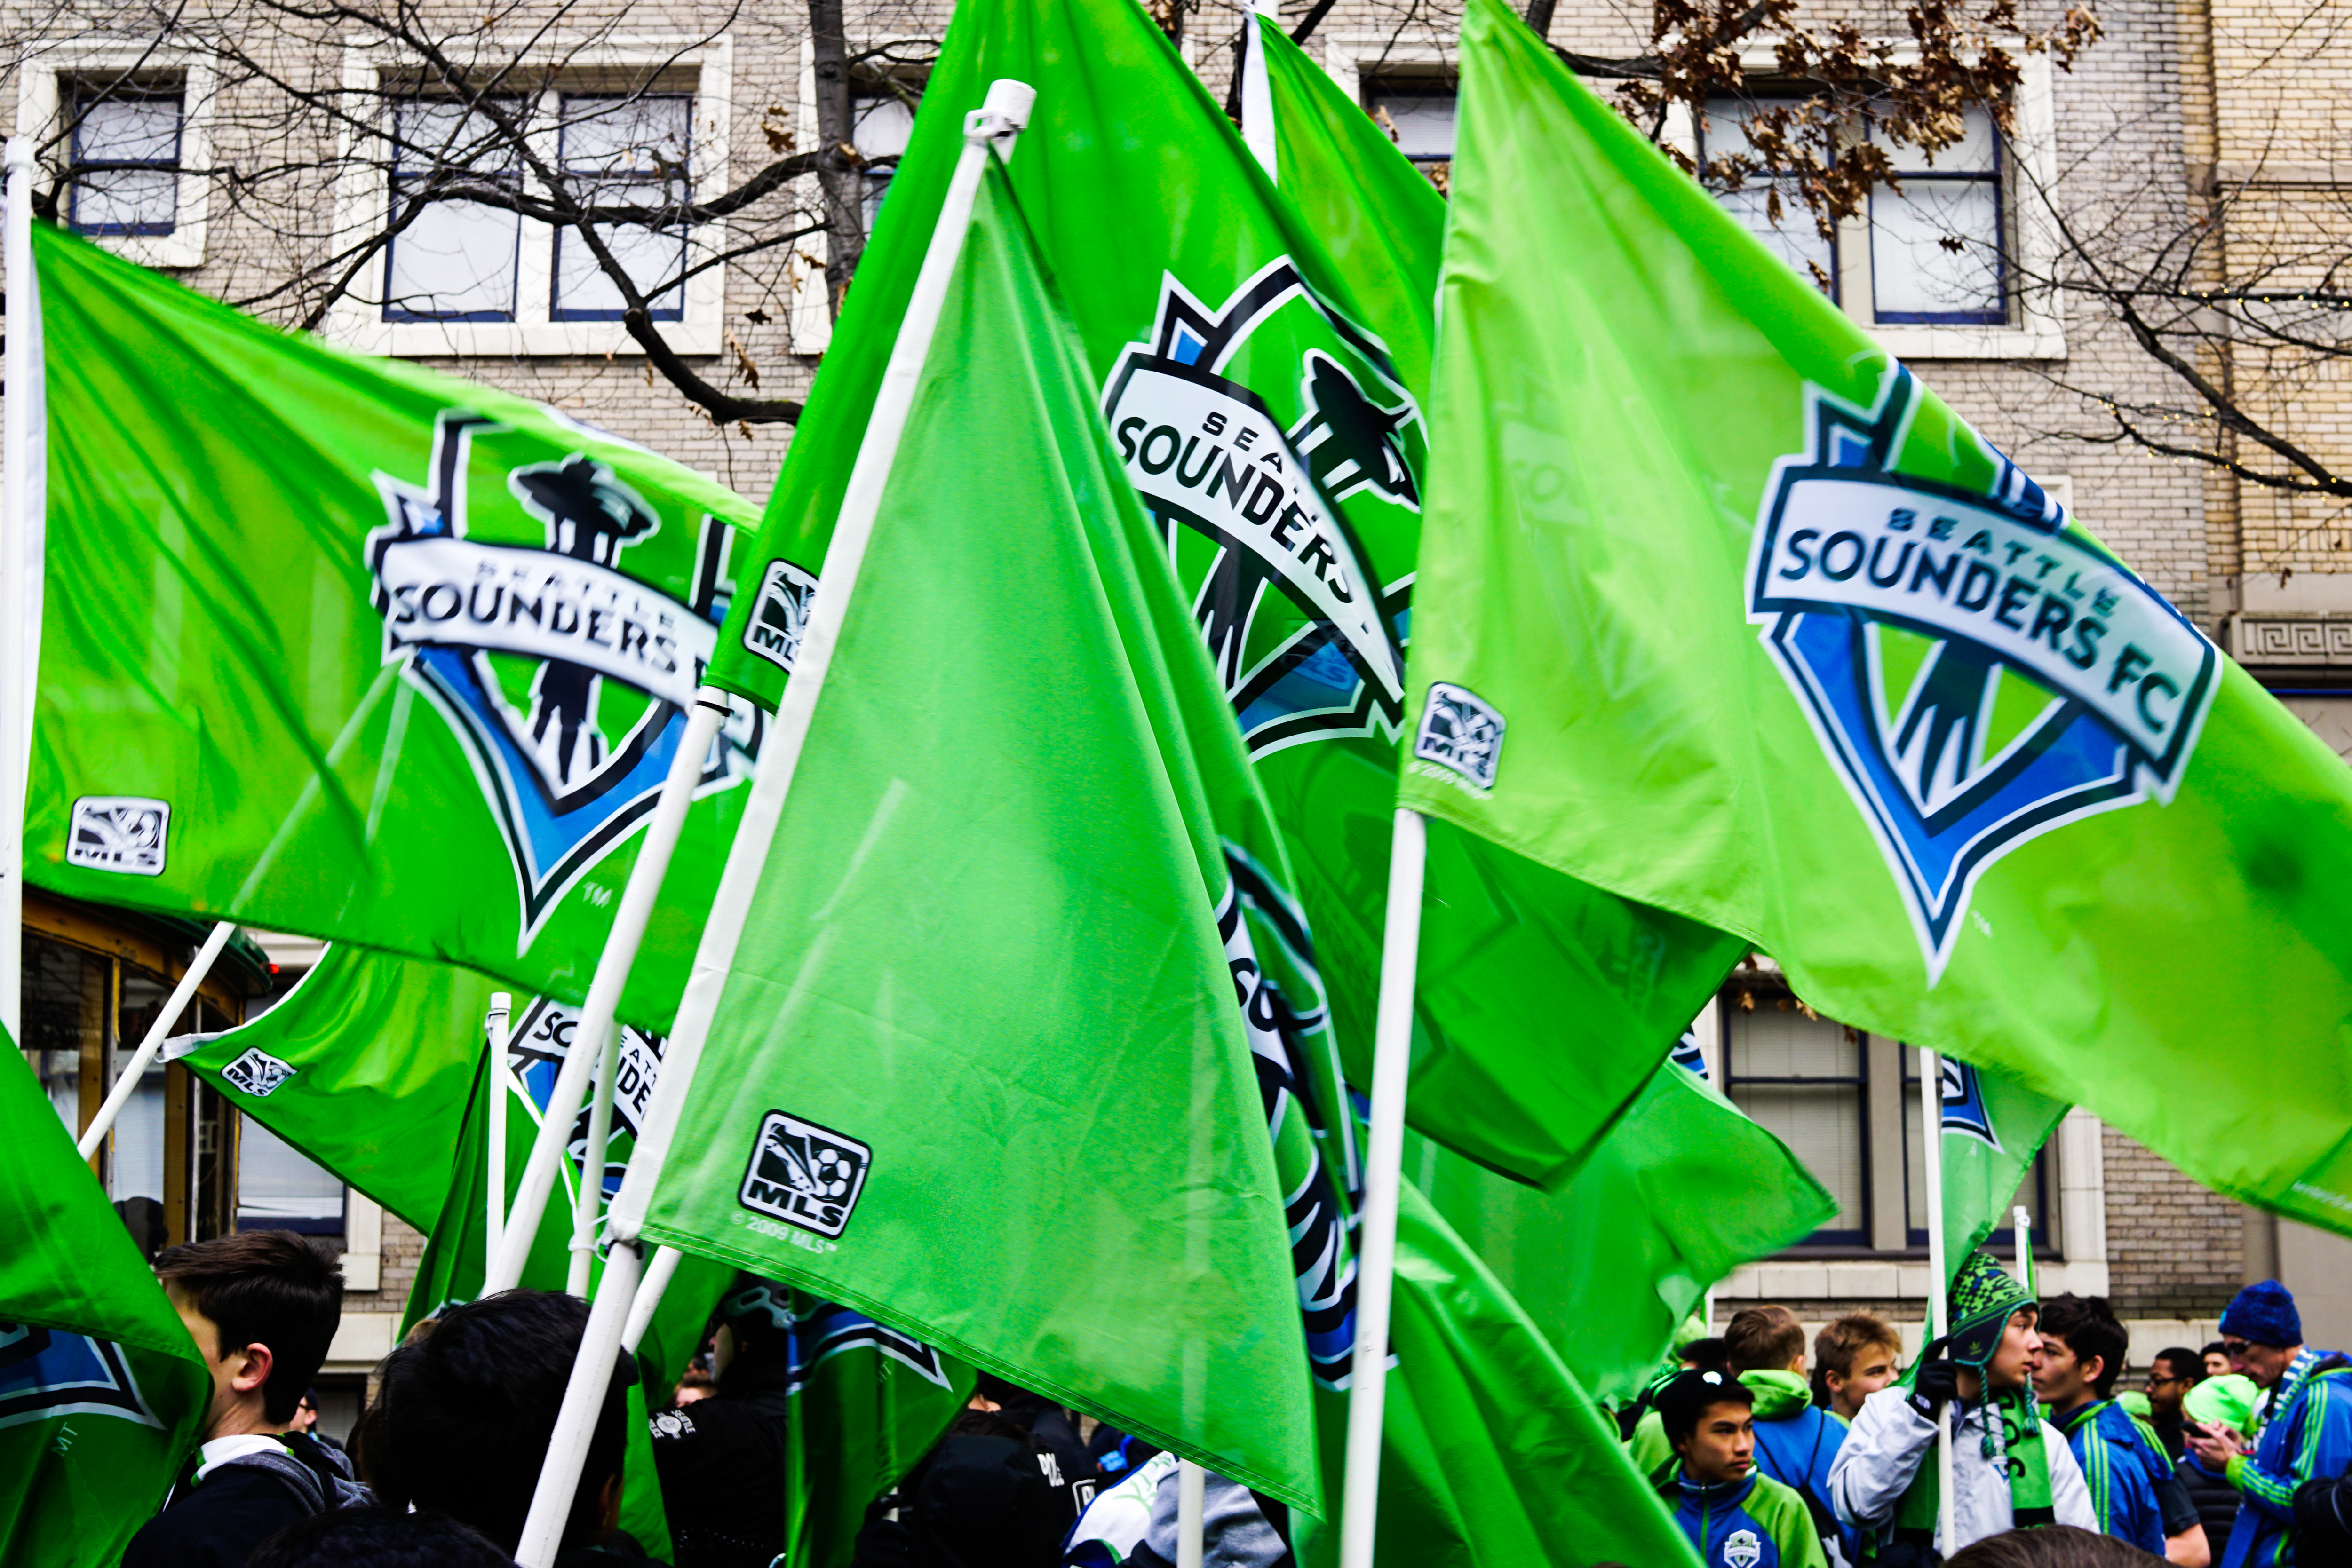 A collection of bright green Seattle Sounders flags, displaying the team's logo prominently.